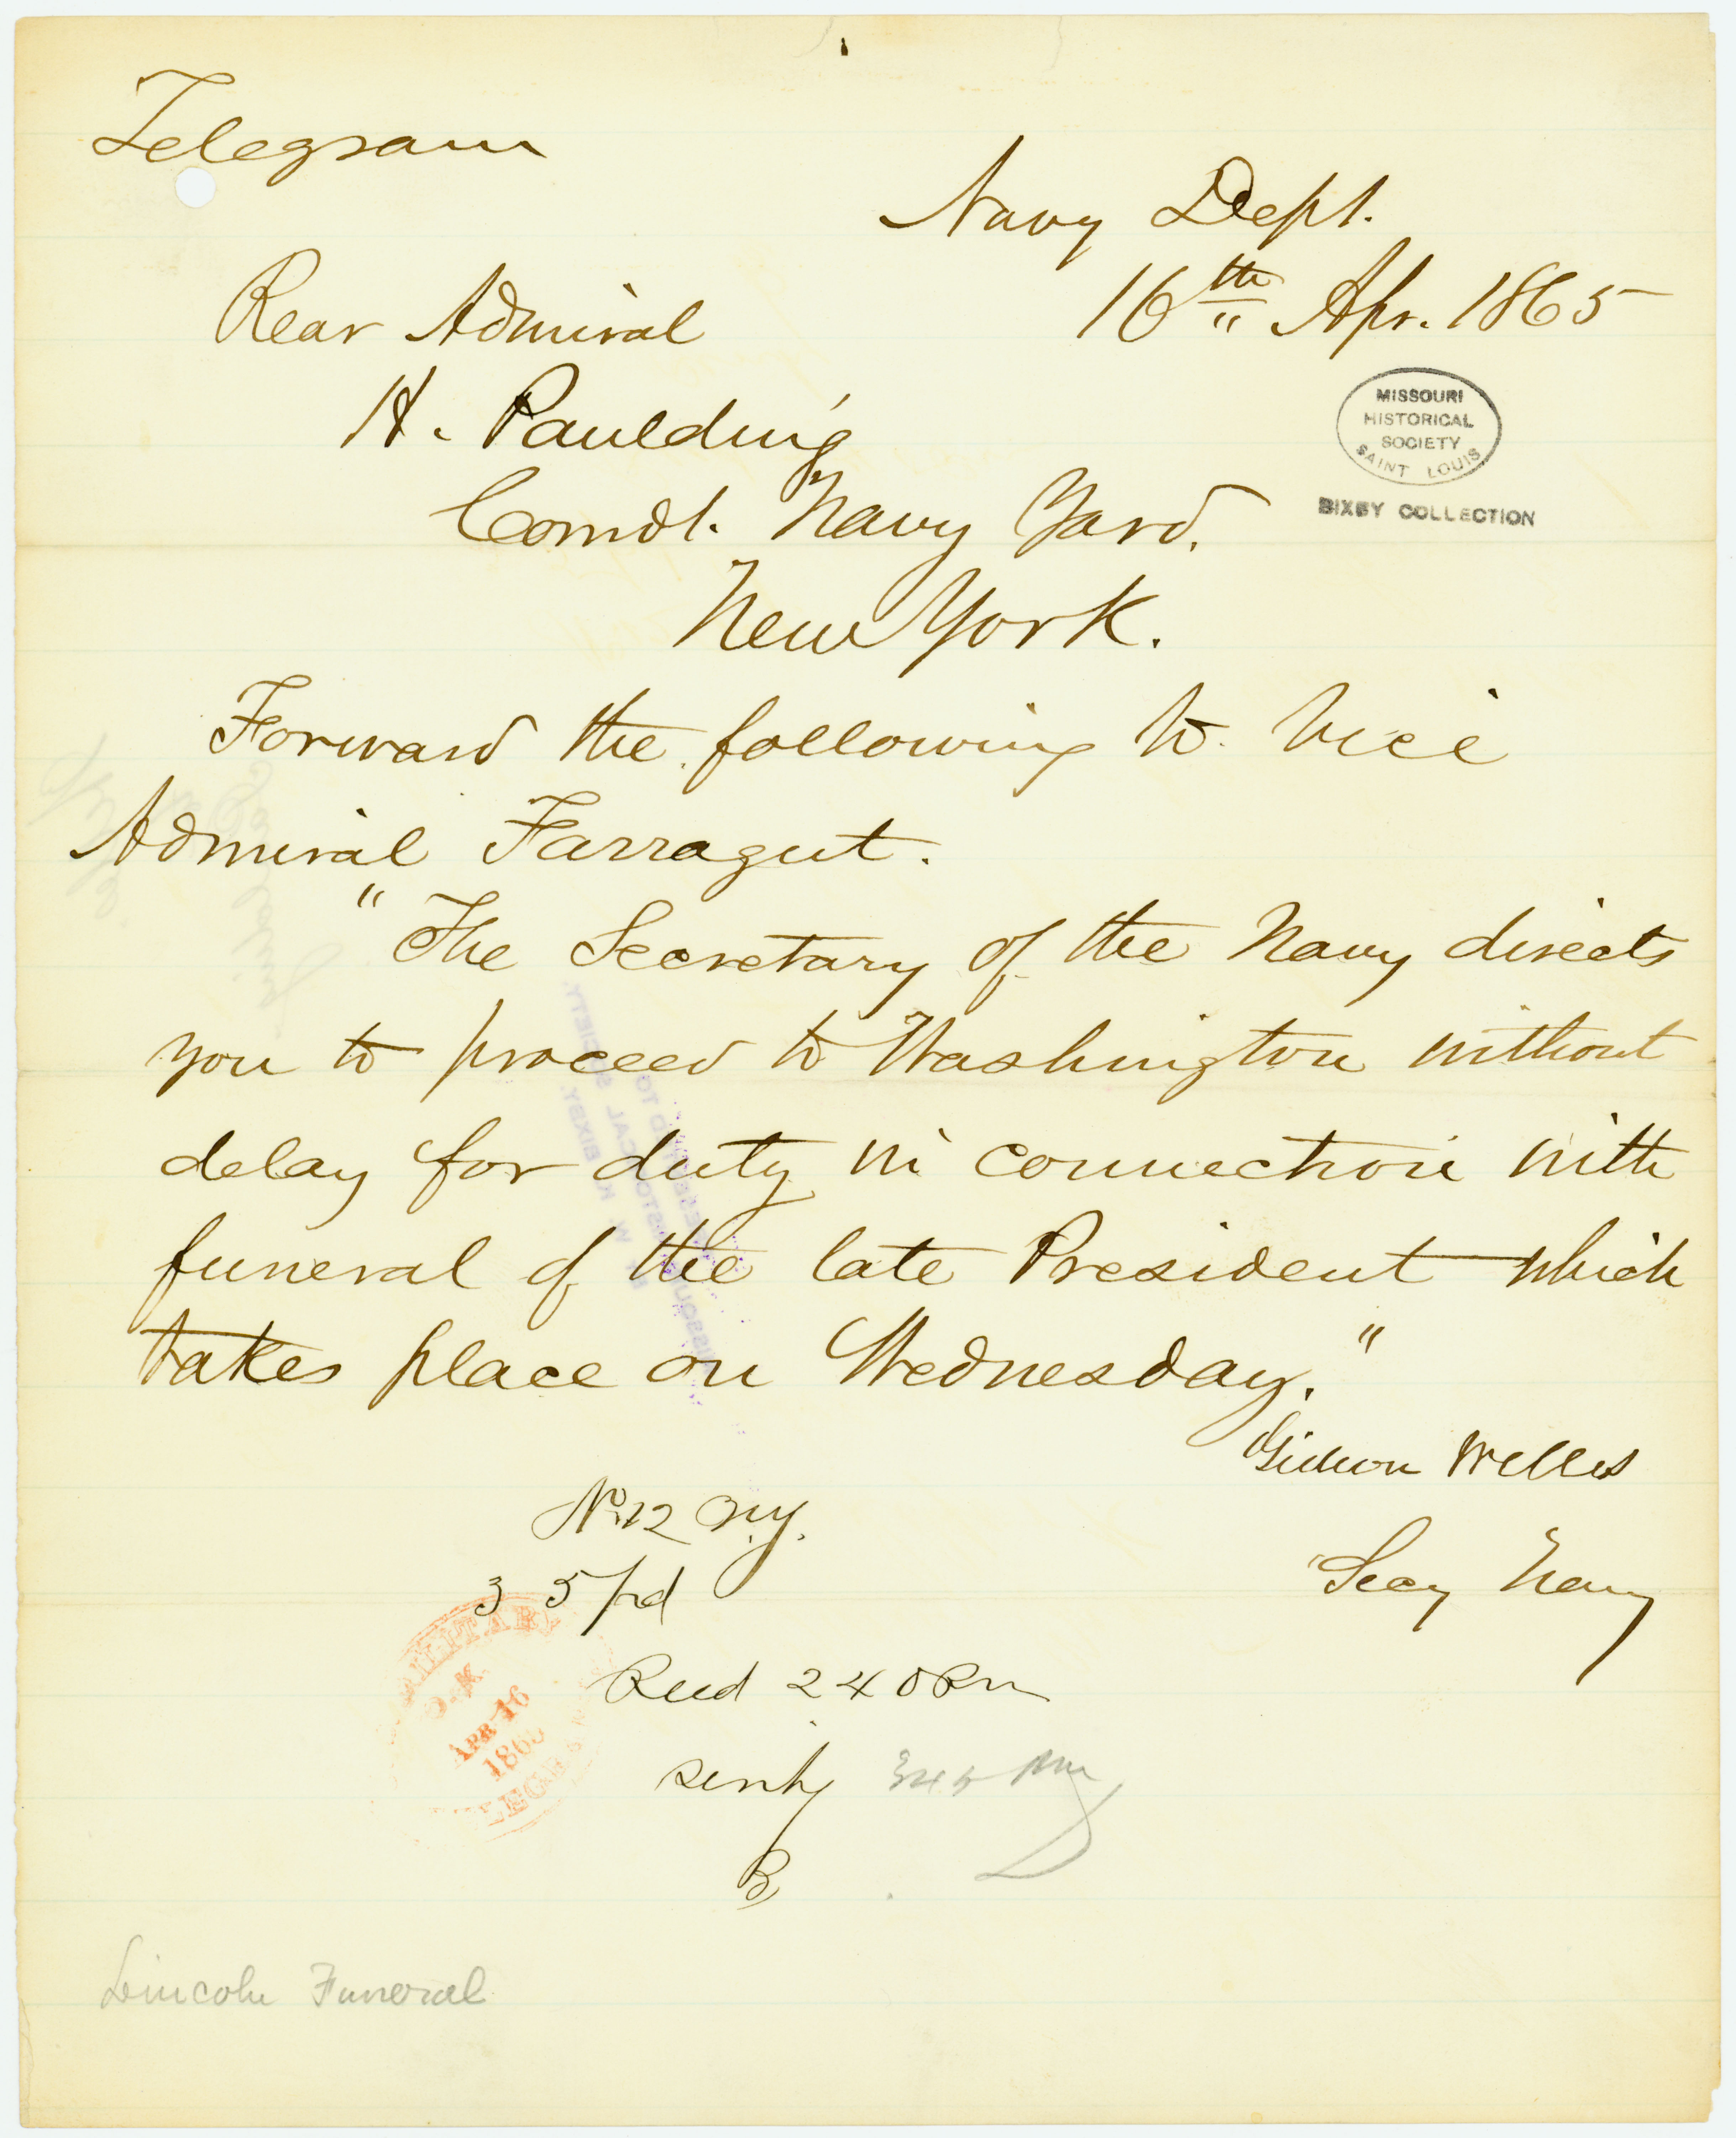 Telegram of Gideon Welles, Secy. Navy, Navy Dept., to Rear Admiral H. Paulding, Comdt. Navy Yard, New York, April 16, 1865